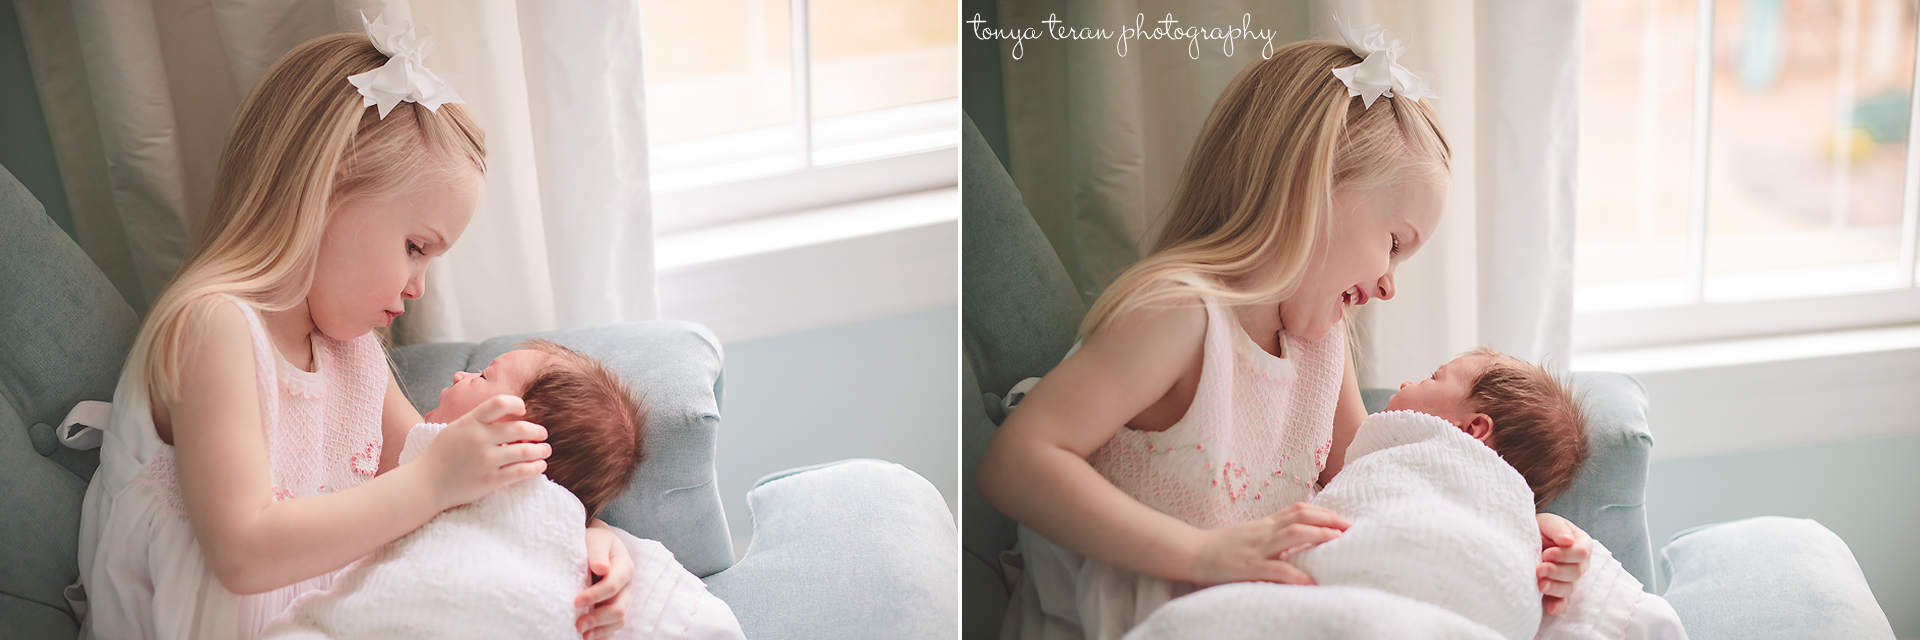 newborn with sibling pose | Rockville, MD Newborn Baby and Family Photographer - Tonya Teran Photography